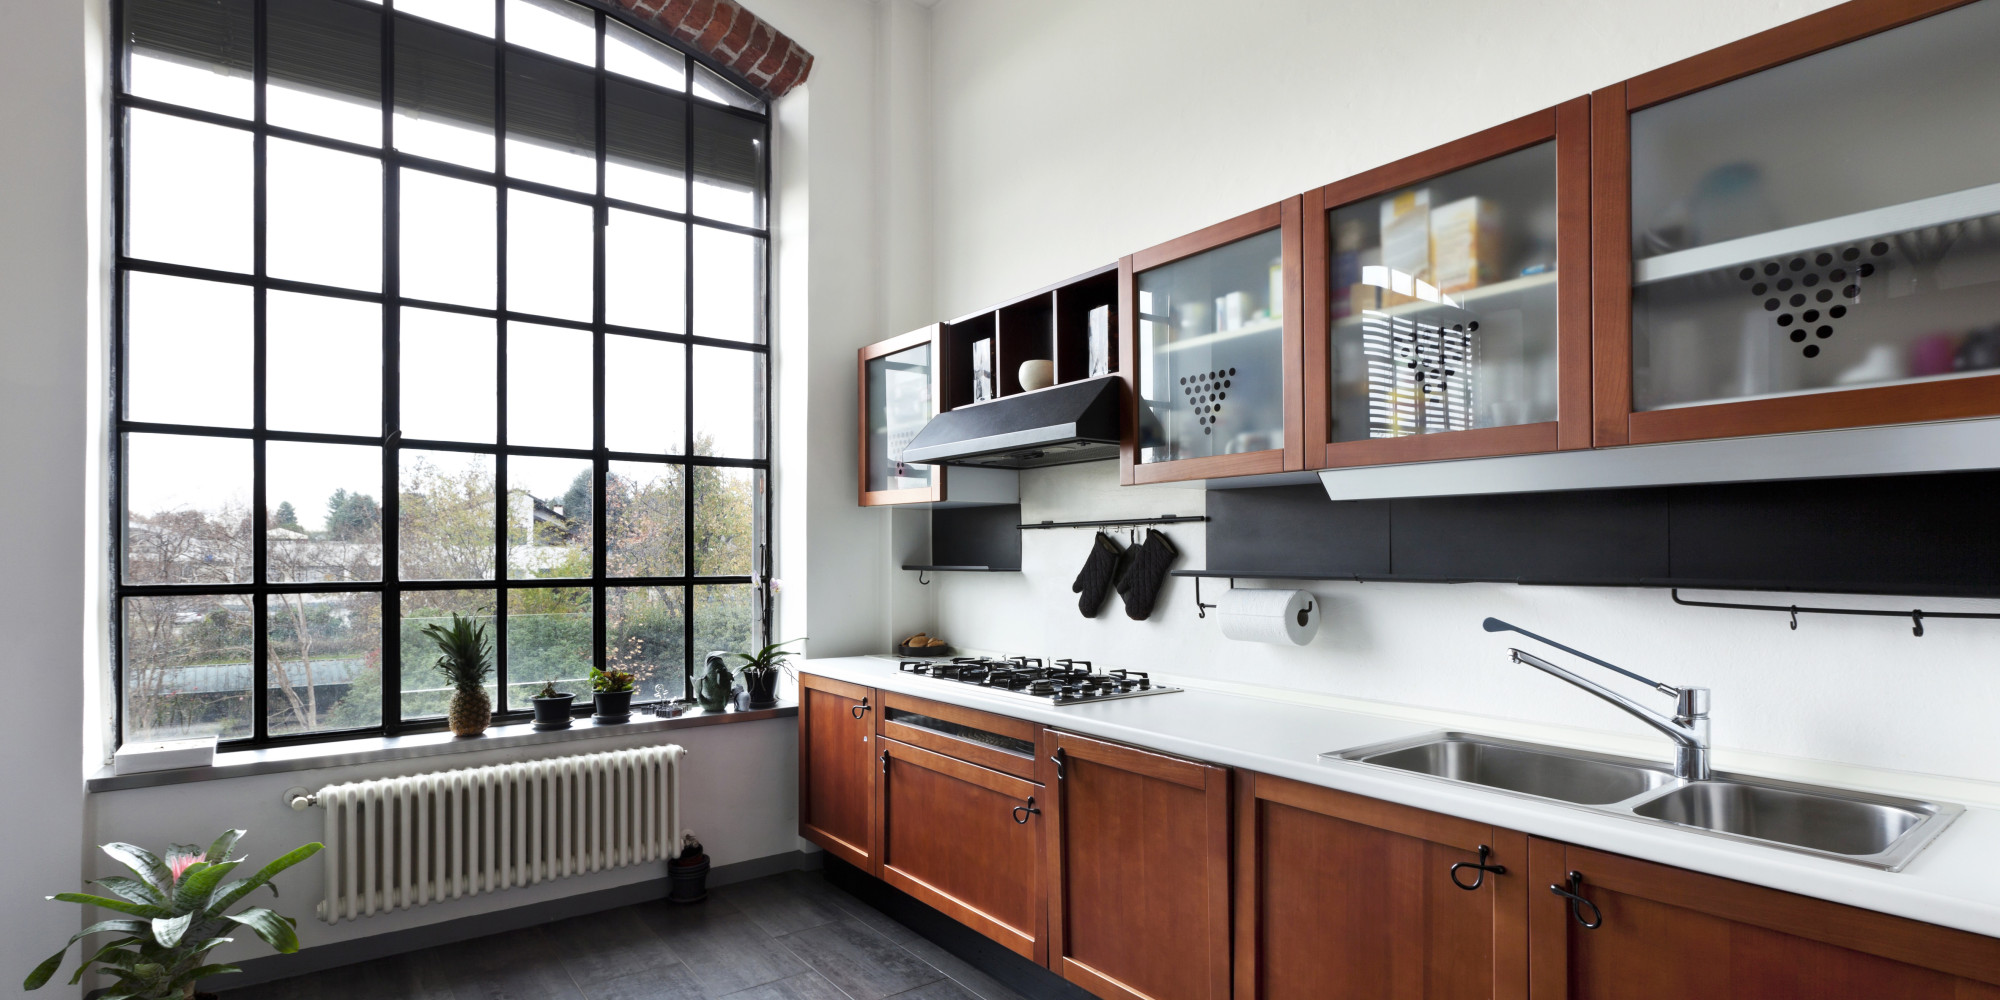 Kitchens 2014 Trends 5 kitchen remodeling trends that are here to stay (for now) | huffpost